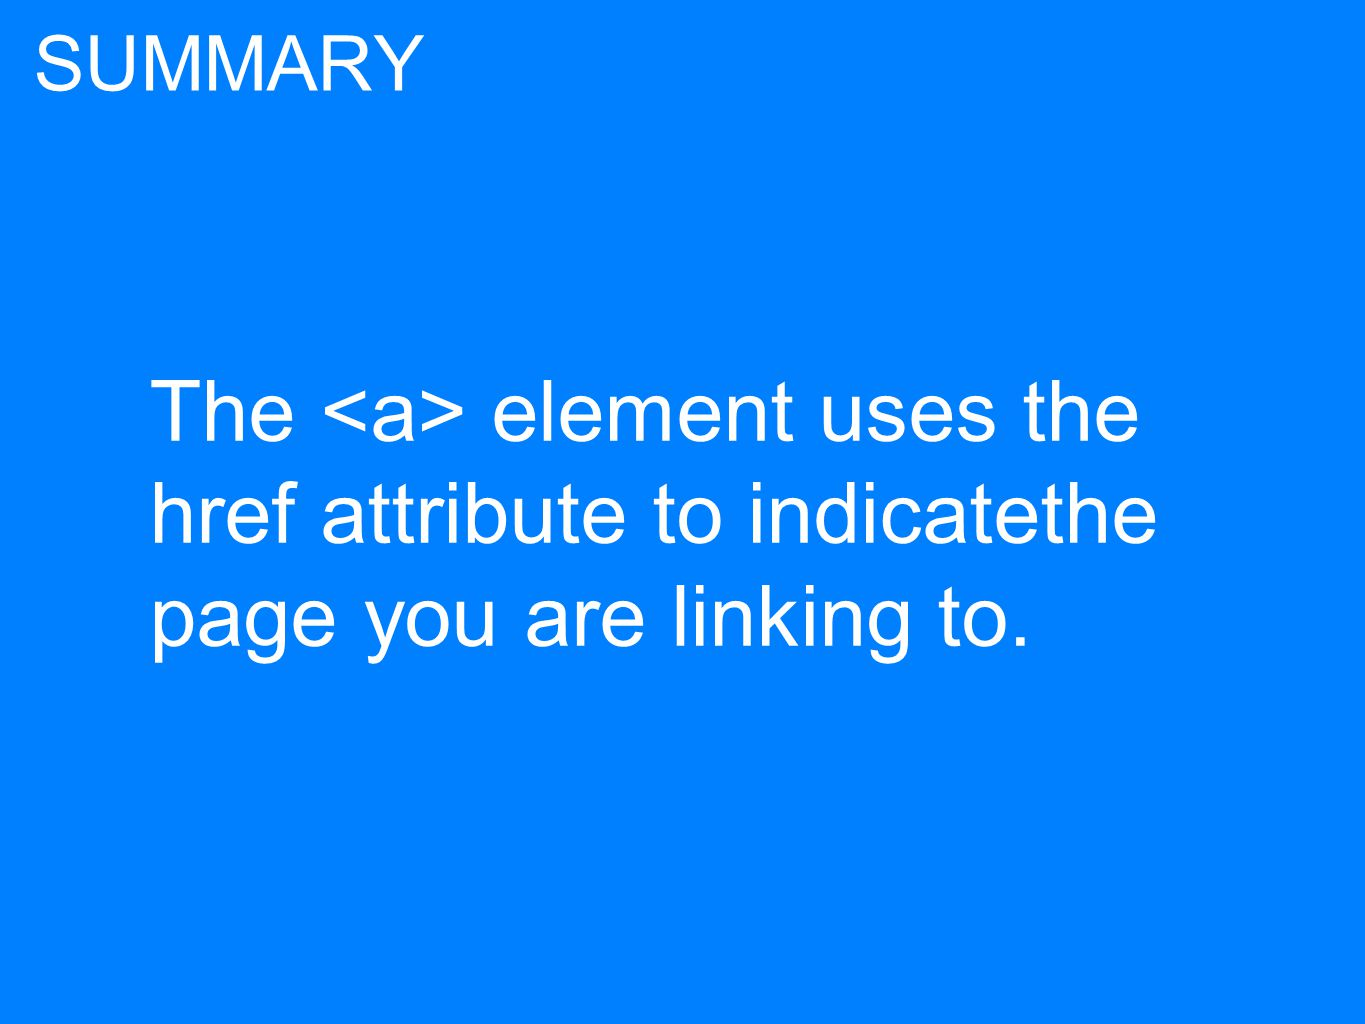 The element uses the href attribute to indicatethe page you are linking to. SUMMARY